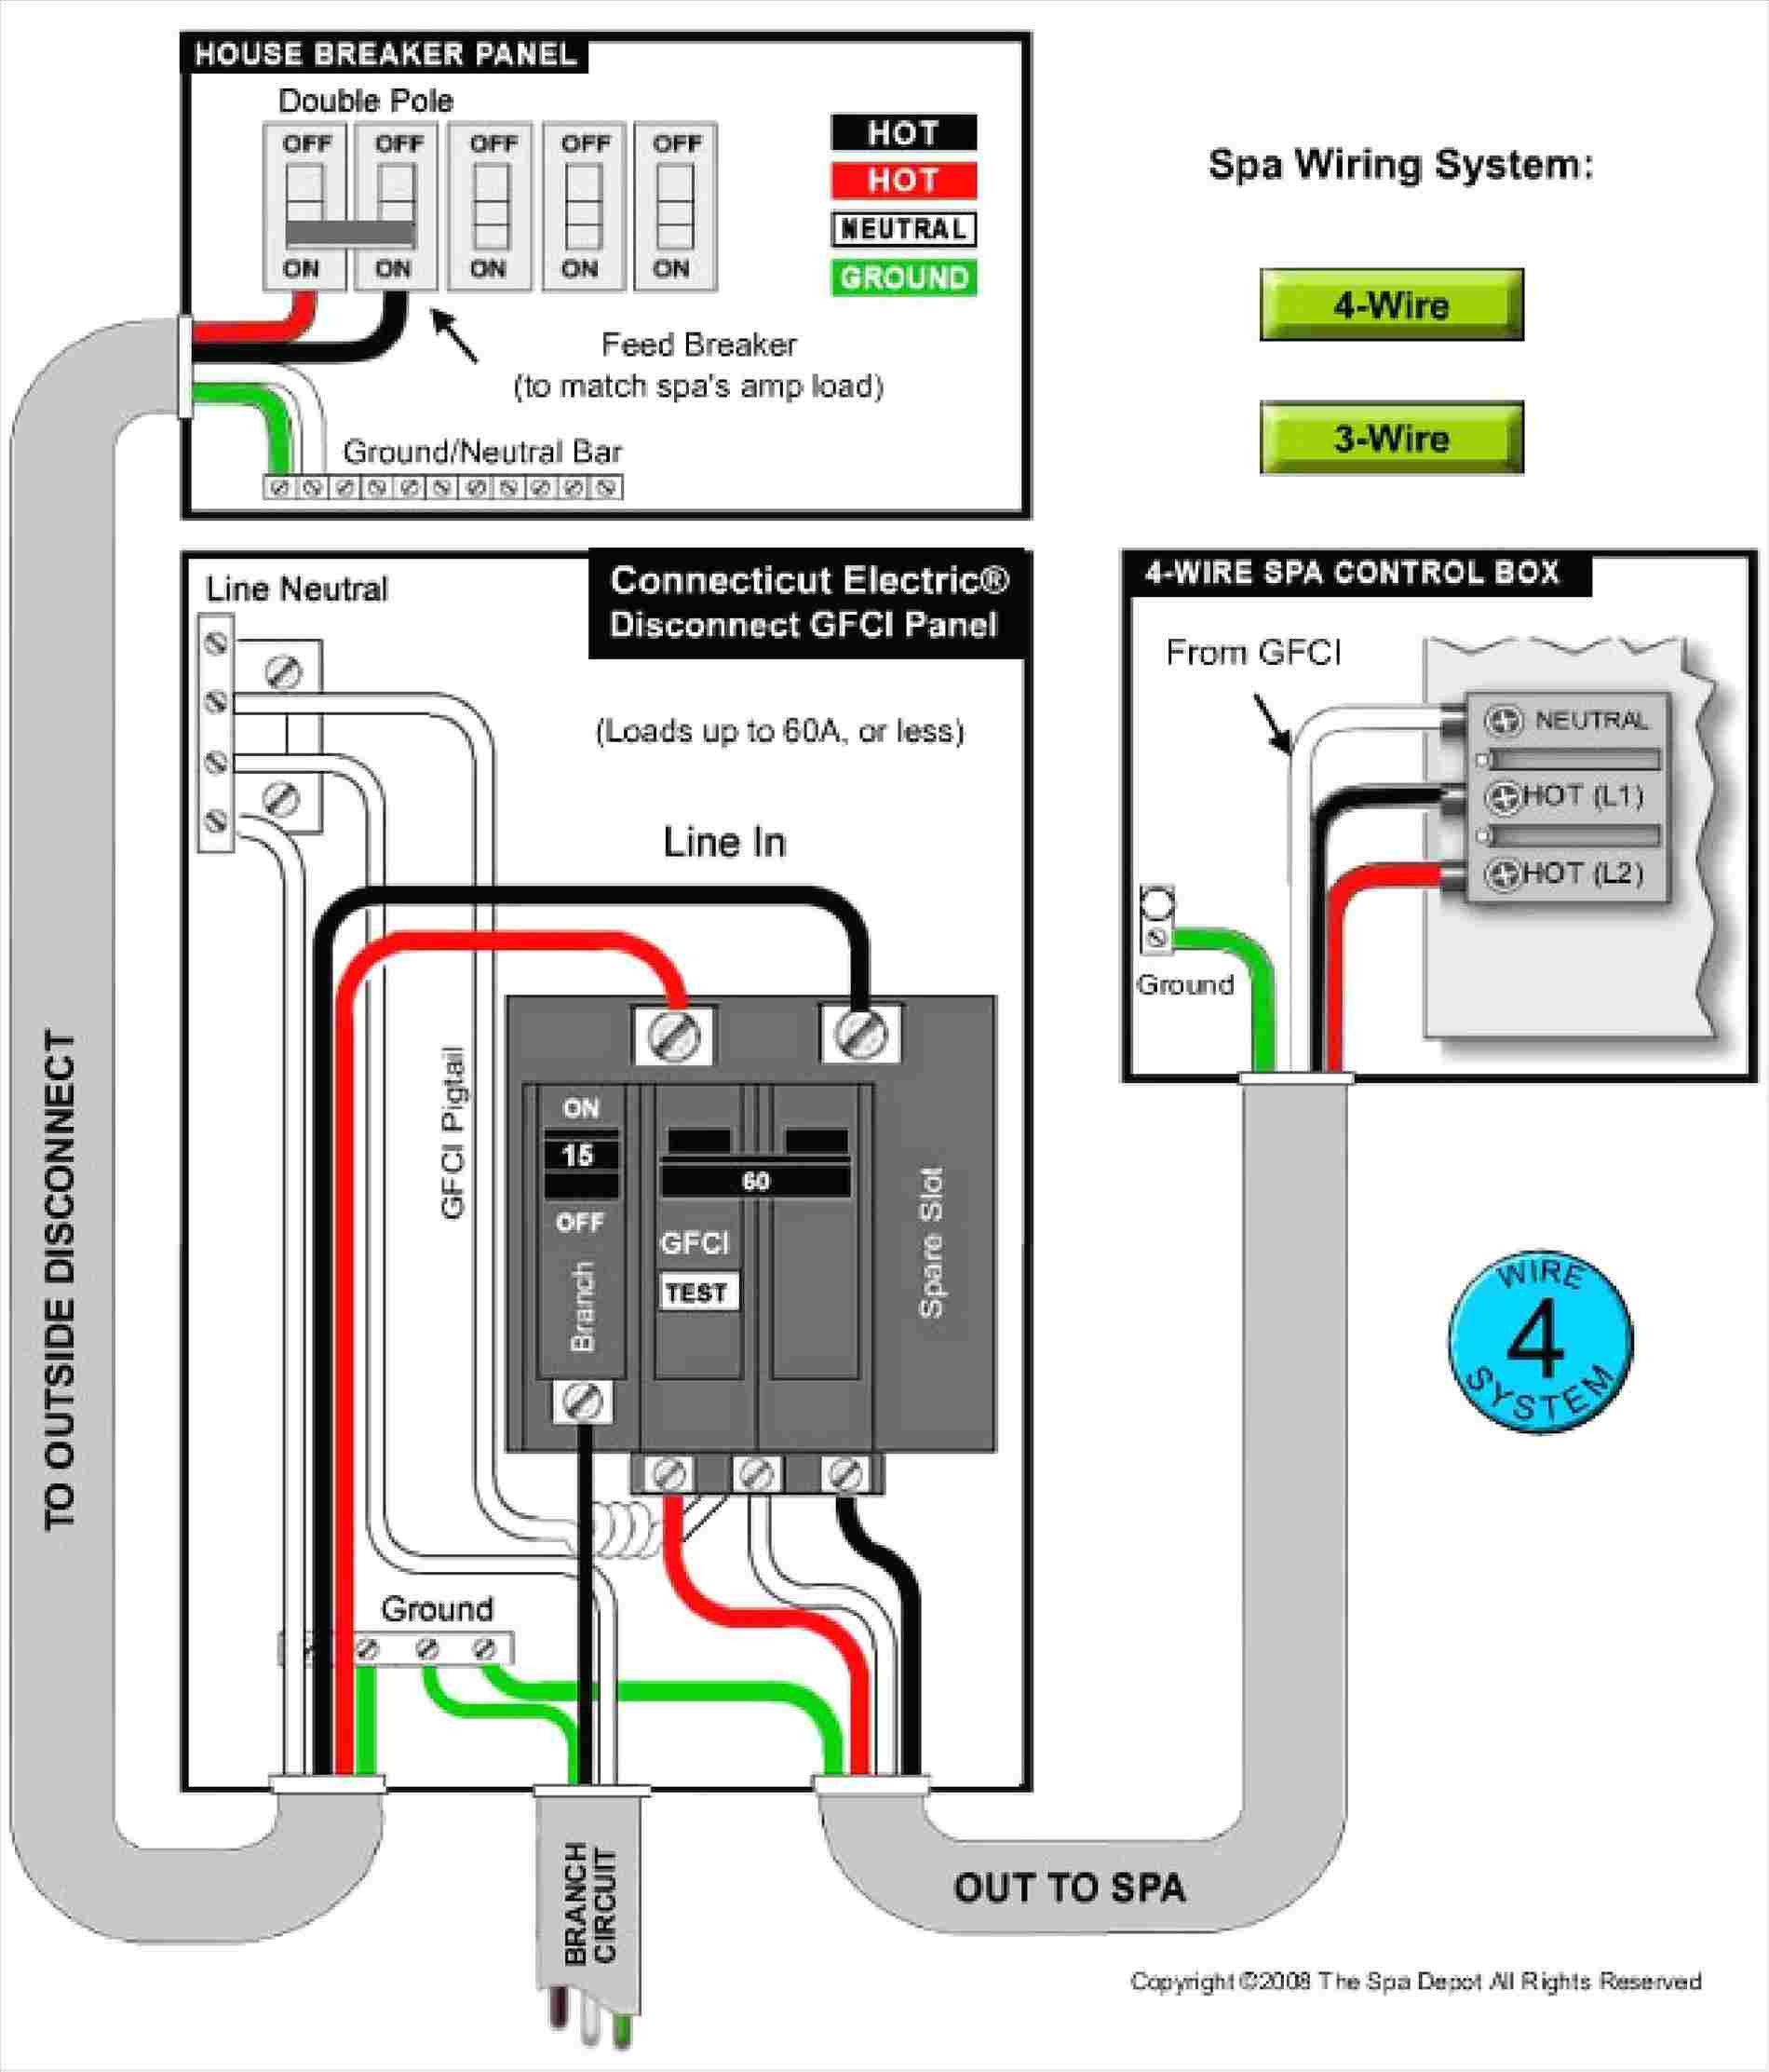 125 Amp Sub Panel Wiring Diagram | Manual E-Books - 125 Amp Sub Panel Wiring Diagram